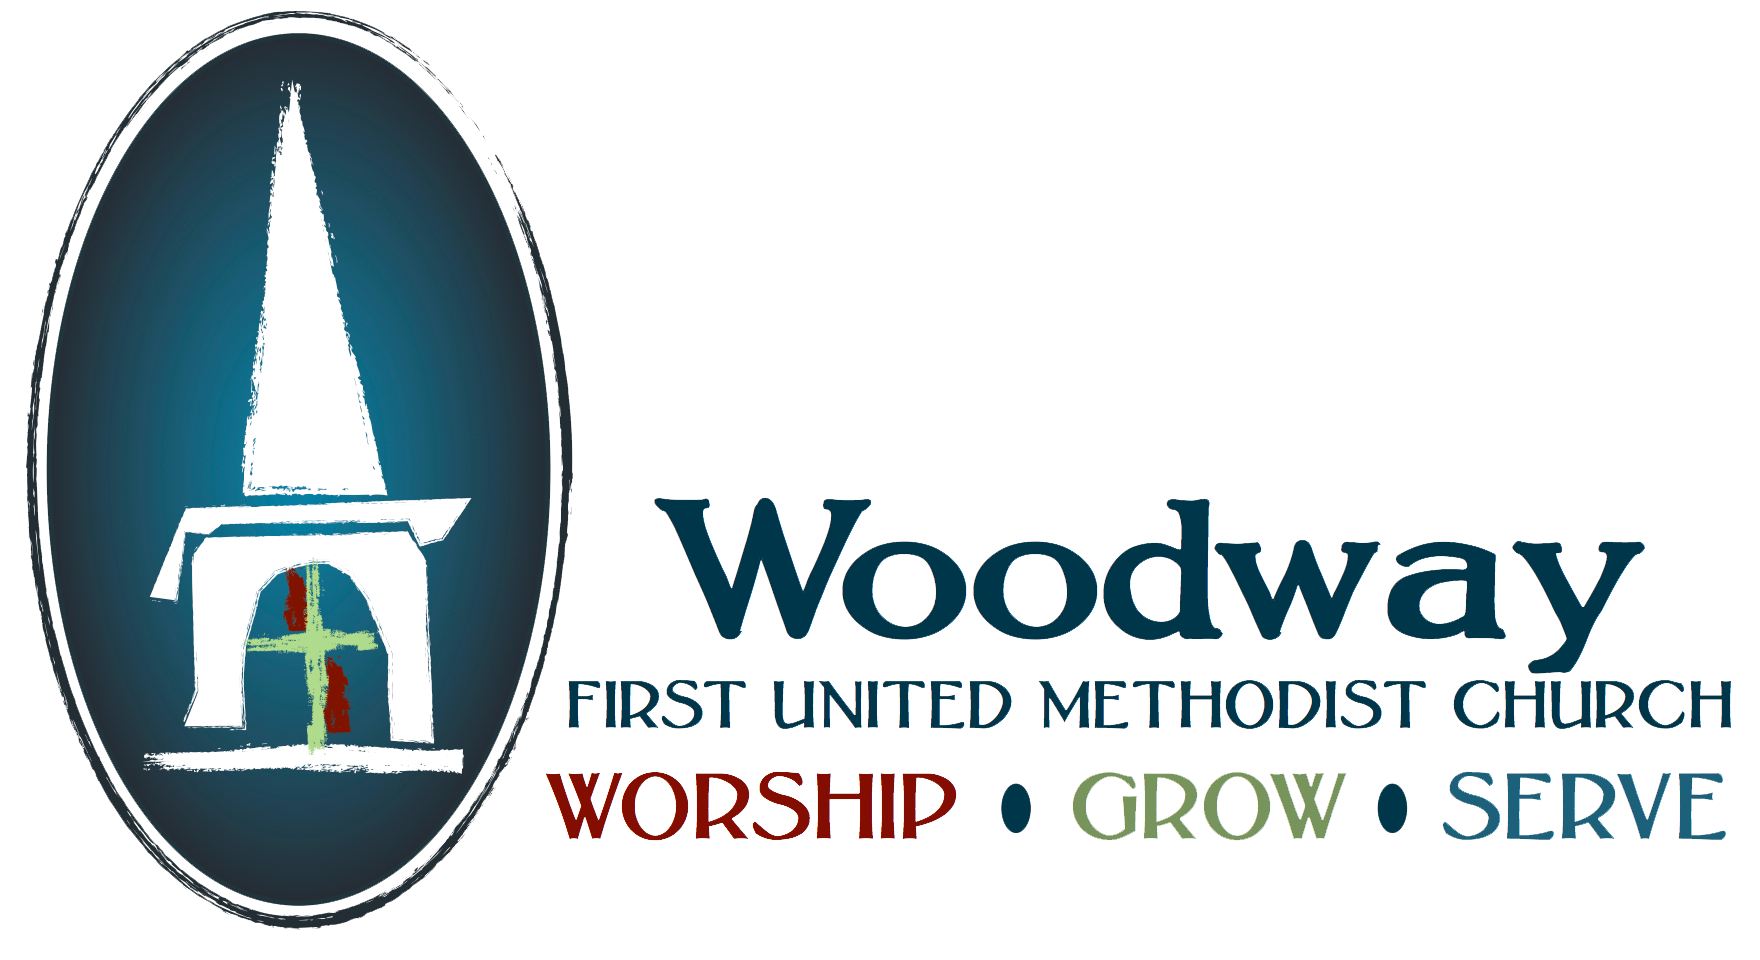 Woodway First United Methodist